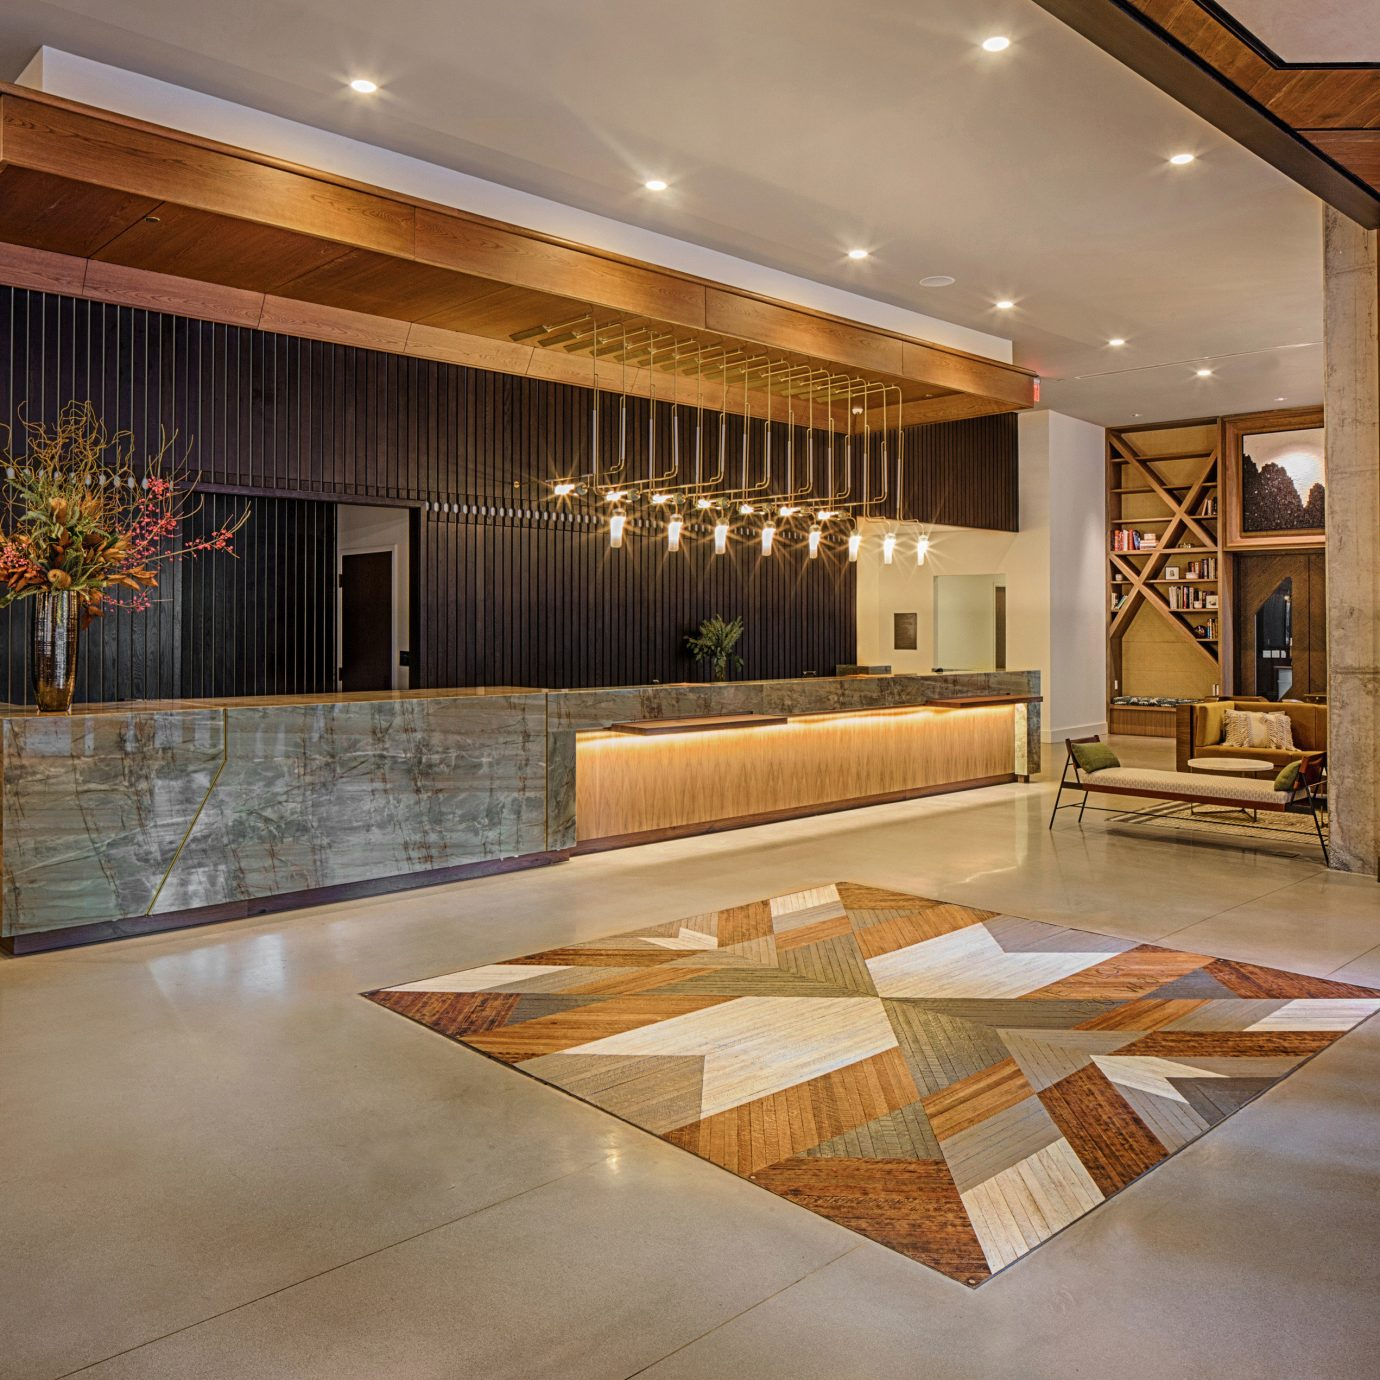 Lobby property flooring hardwood home wood flooring living room mansion